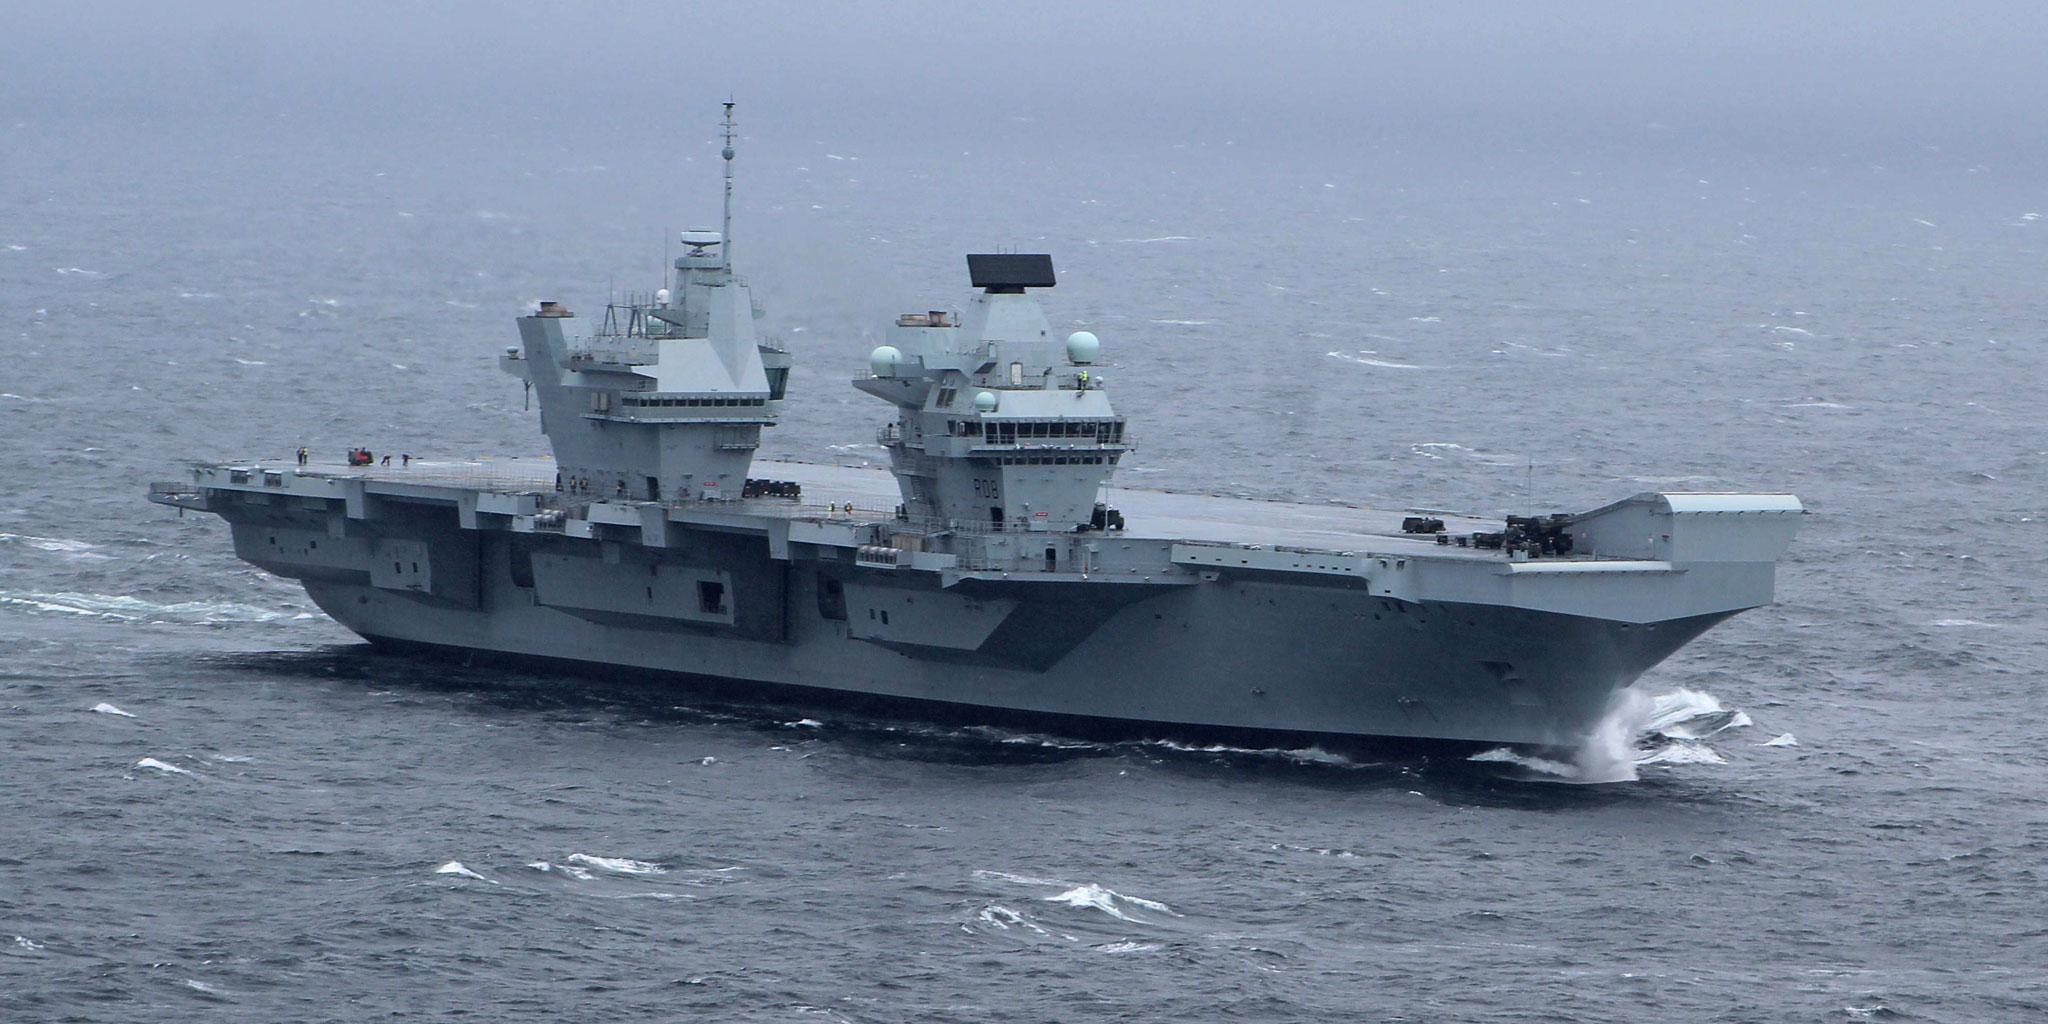 Britain's New Aircraft Carrier Starts Sea Trials